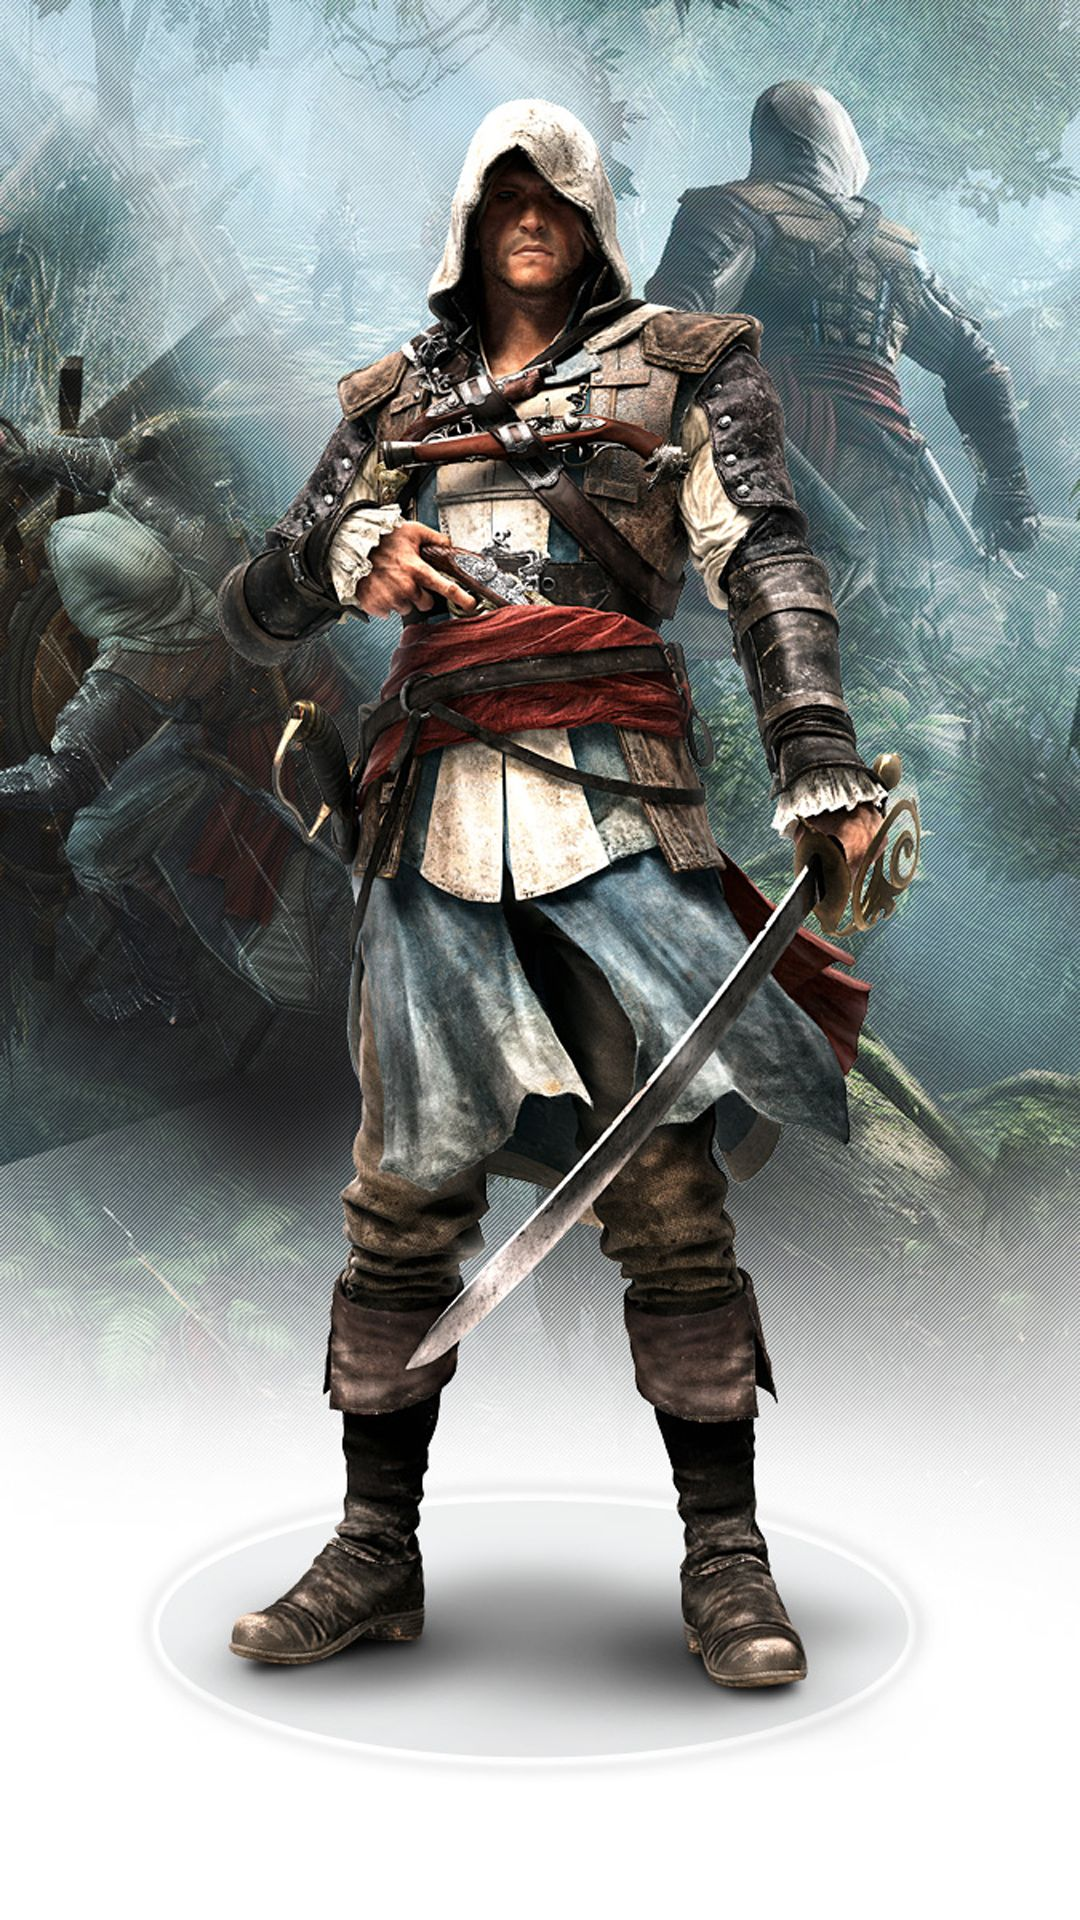 Hd Assassin S Creed Wallpaper For Iphone Wallpapers Bonitos